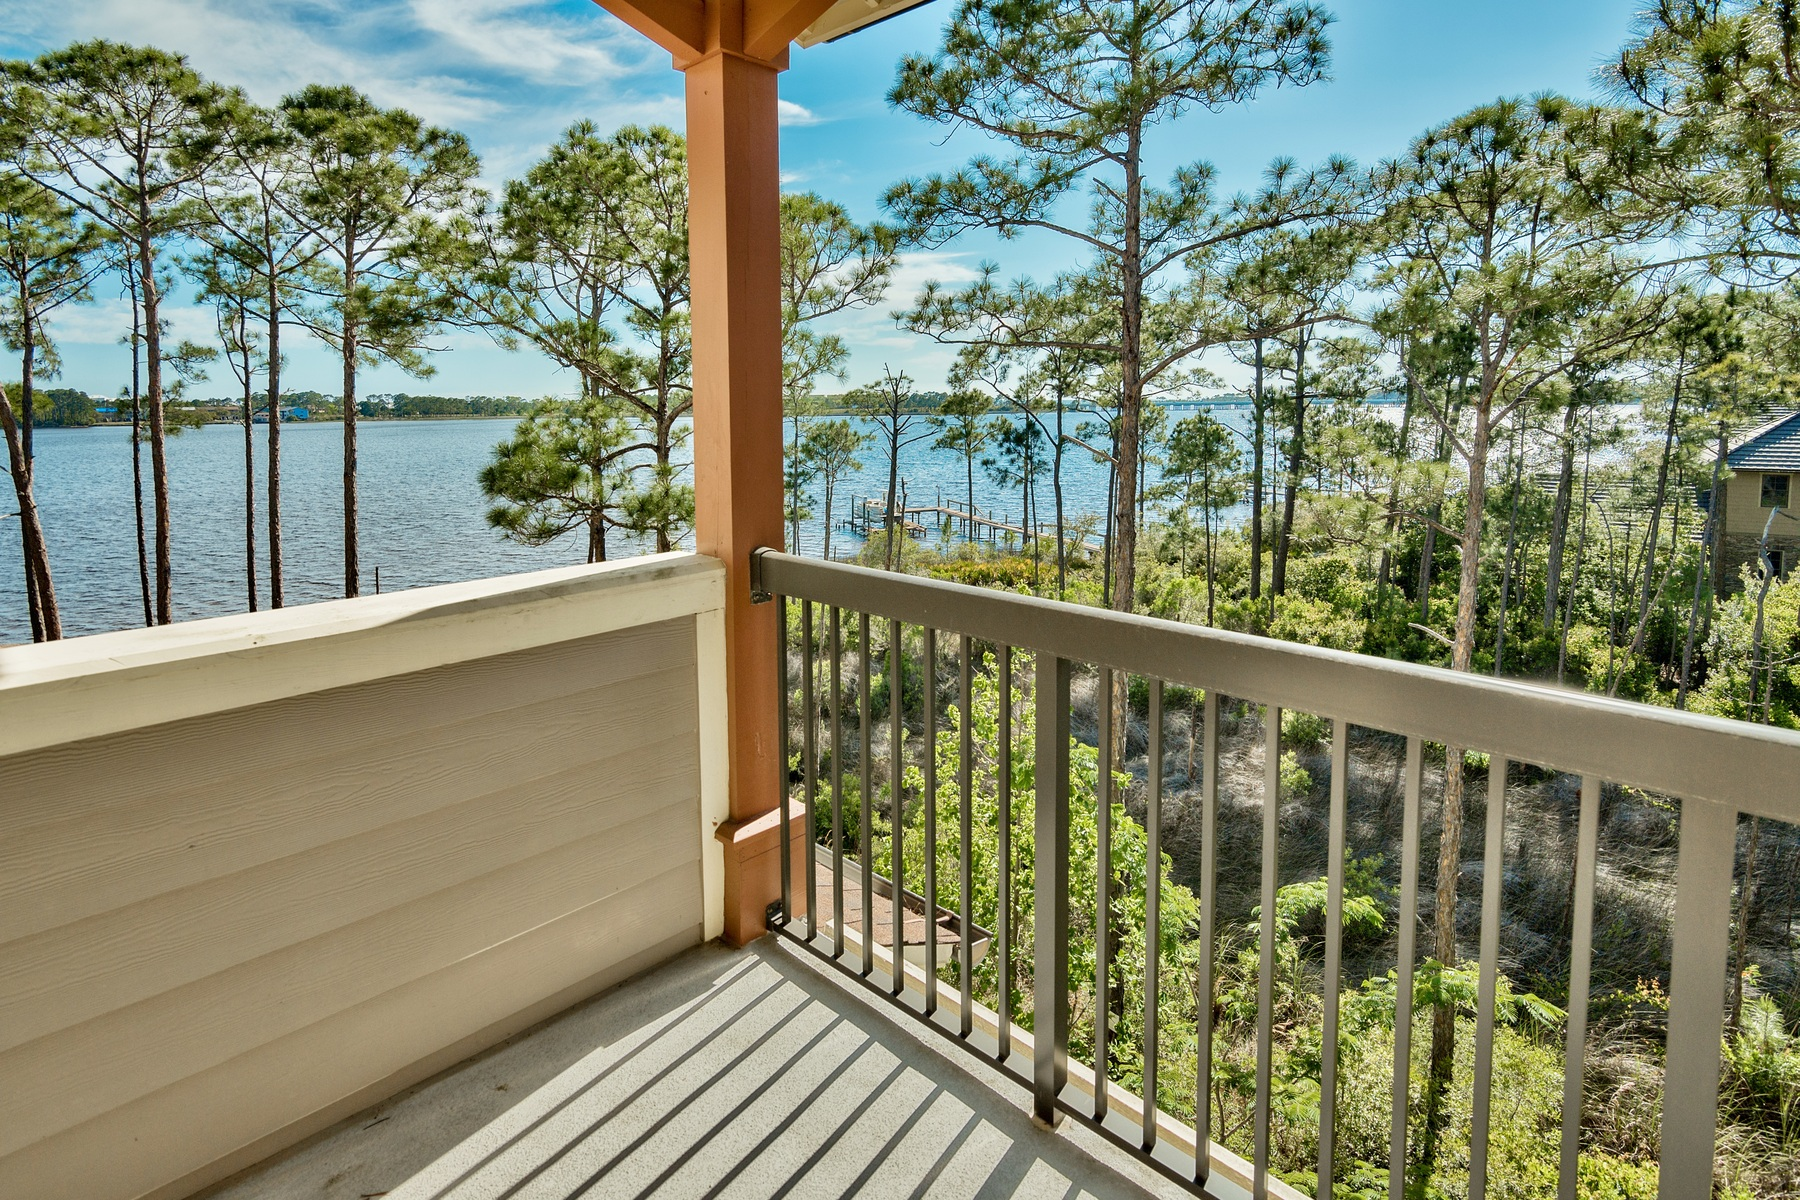 コンドミニアム のために 売買 アット BREATHTAKING LAKEFRONT VIEWS WITH TOP AMENITIES 1101 Sawgrass Court 303 Wild Heron, Panama City Beach, フロリダ, 32413 アメリカ合衆国